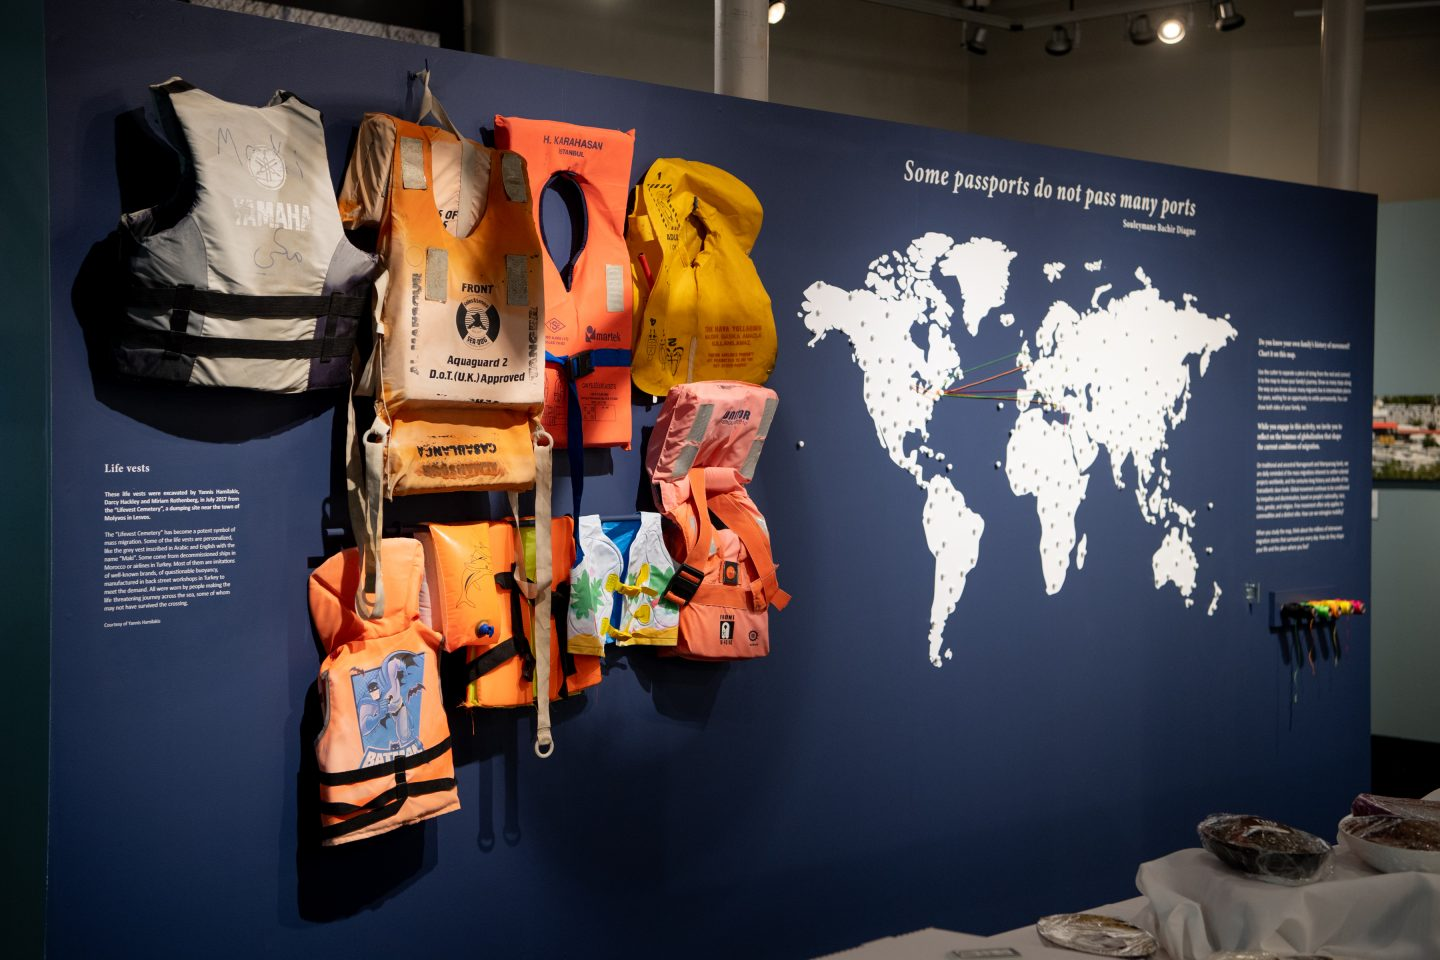 Photo from the exhibit, with discarded lifevests hung on the wall beside a world map.